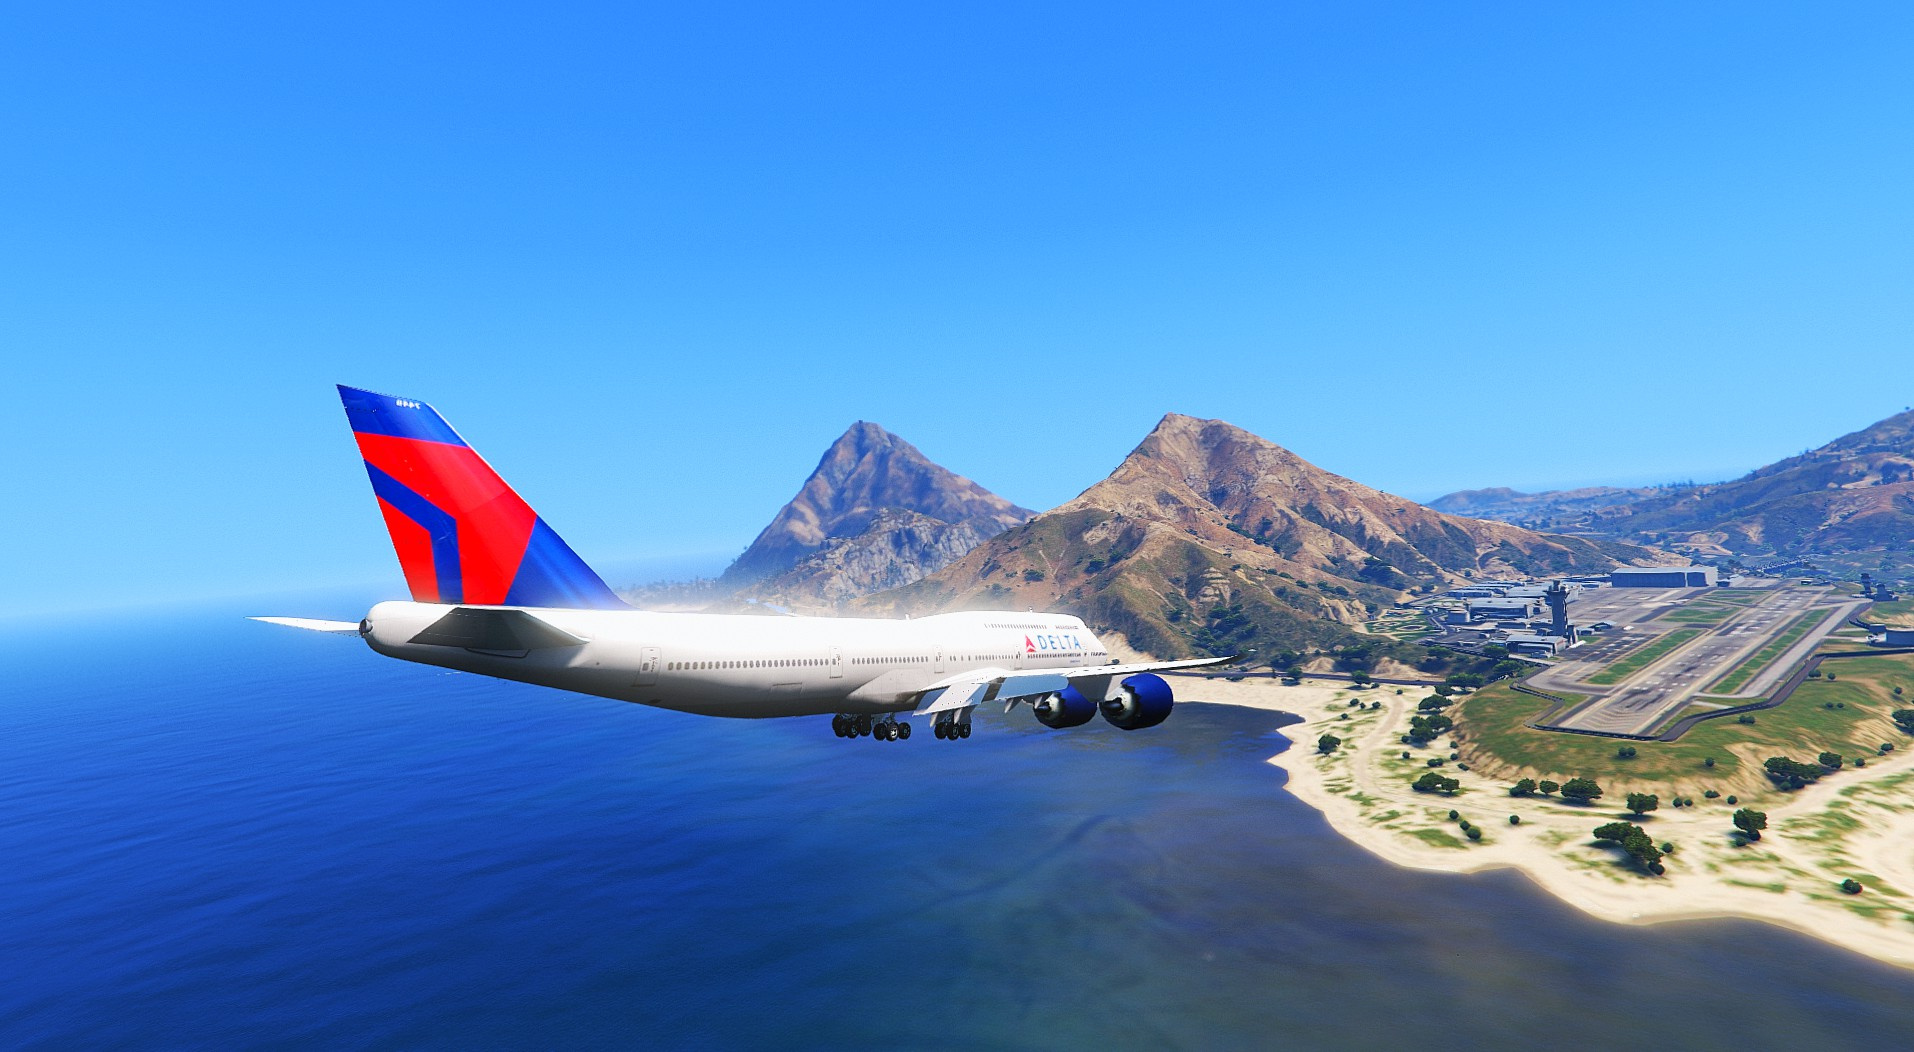 Delta Airlines New Livery